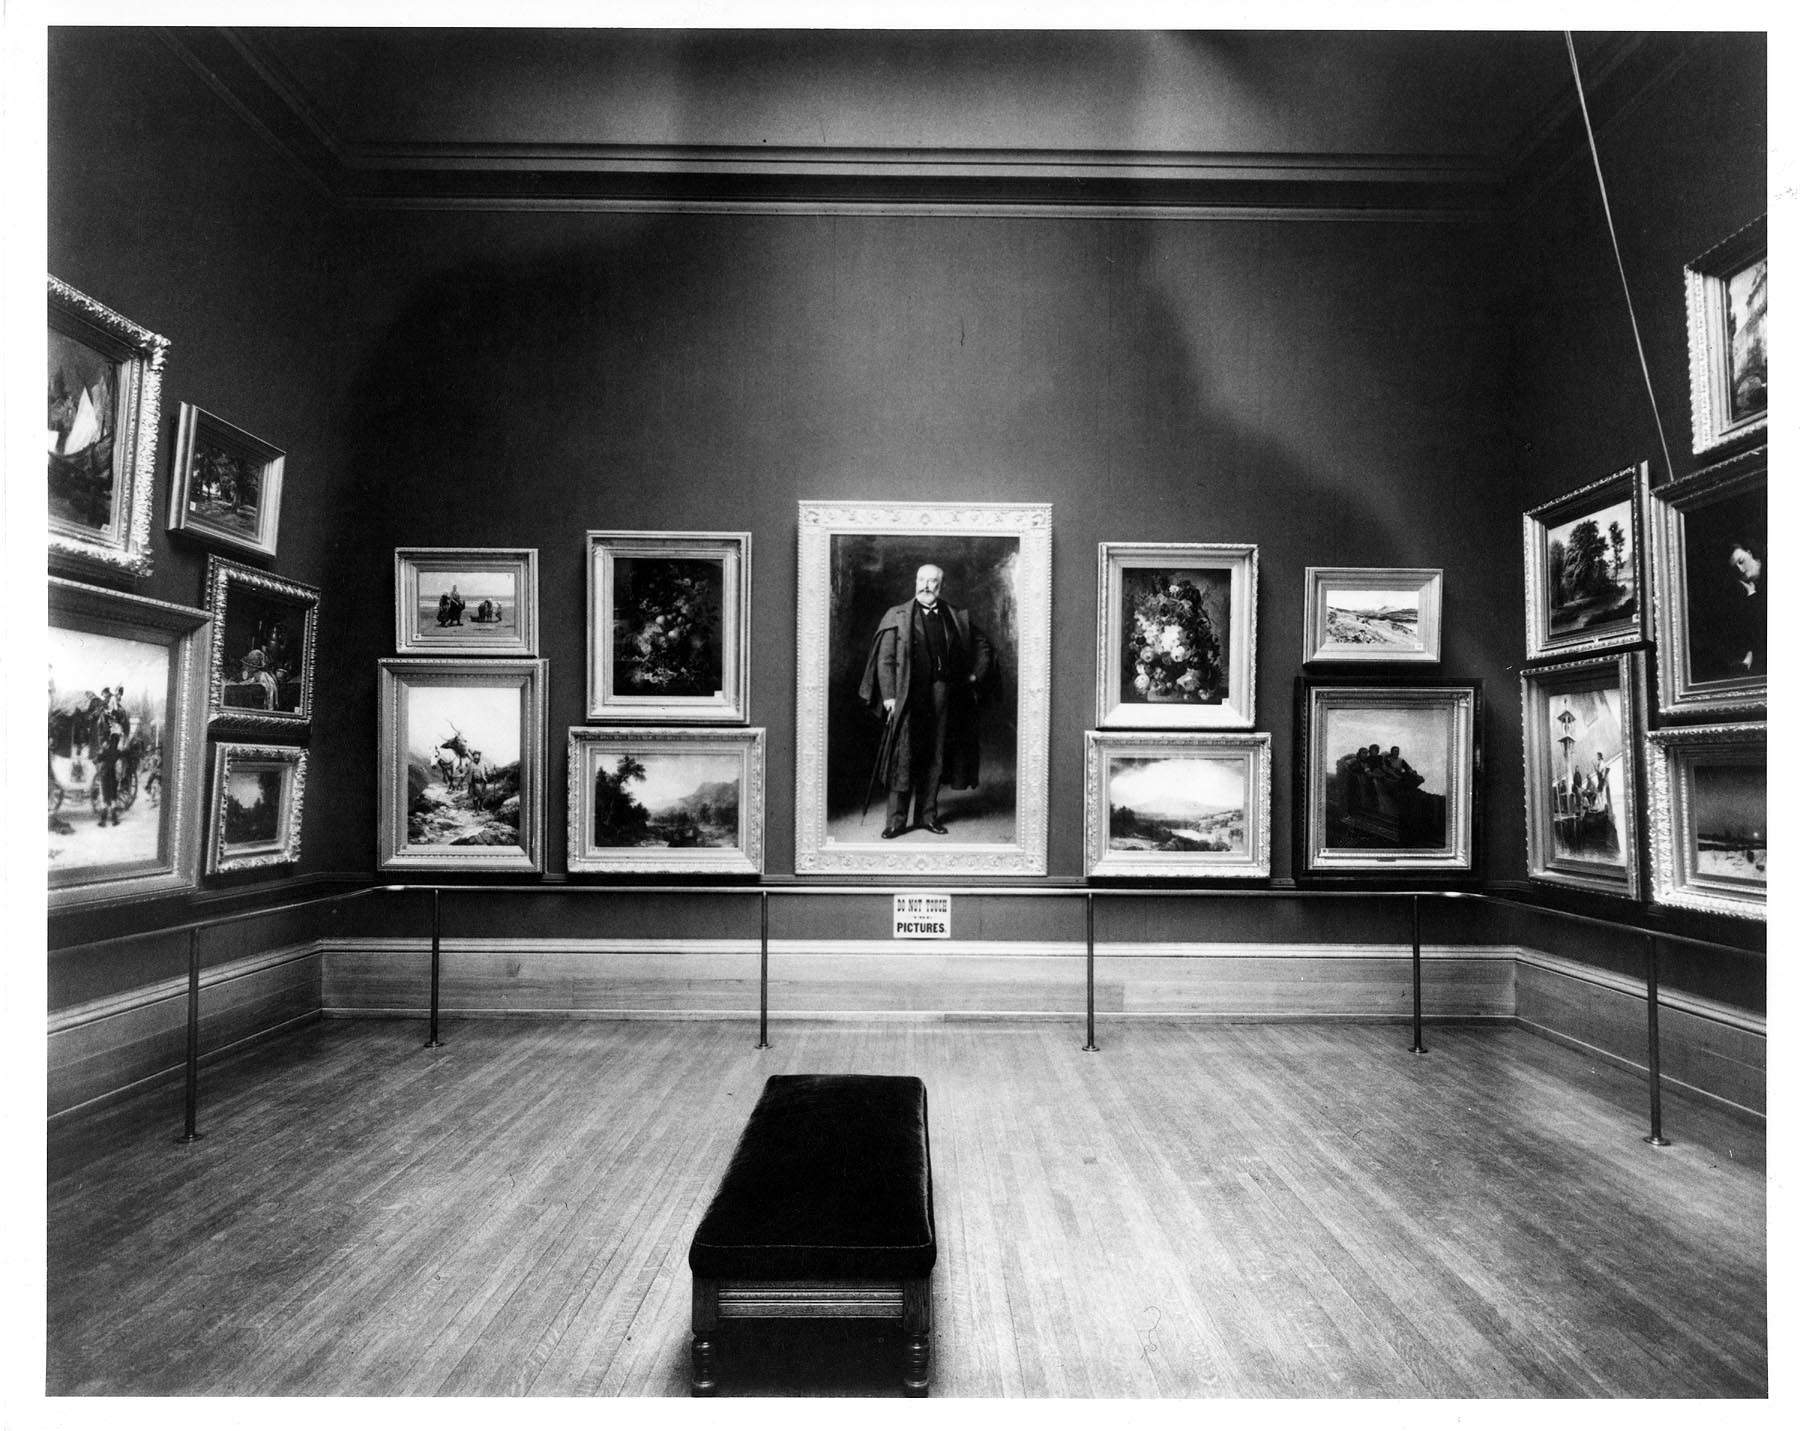 Installation at the layton art gallery ca 1910 milwaukee art museum